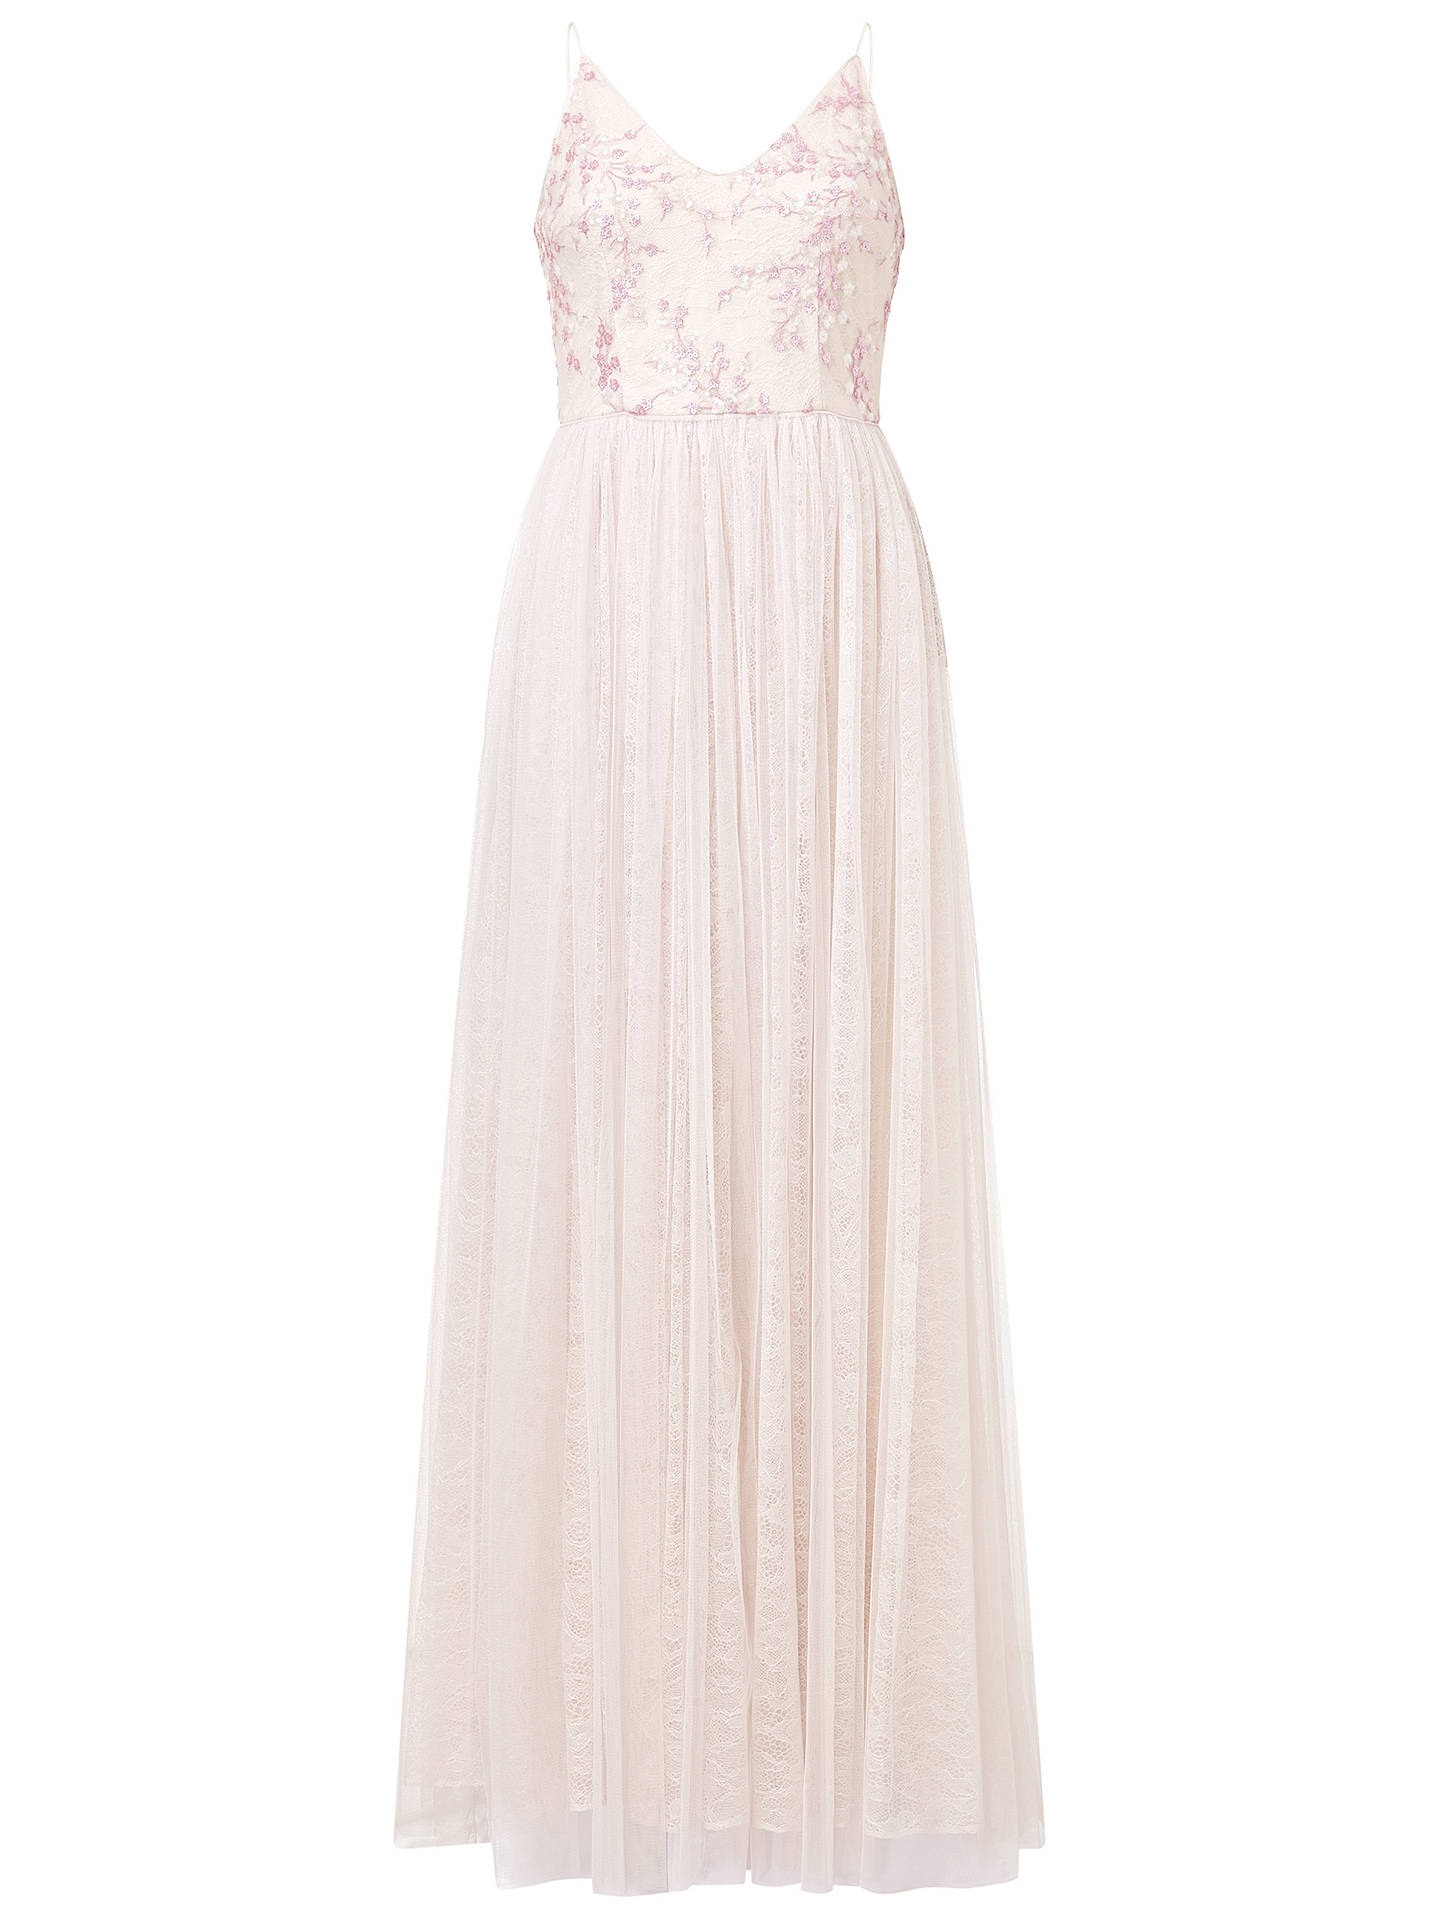 BuyAdrianna Papell Spaghetti Strap Long Dress, Pink, 14 Online at johnlewis.com